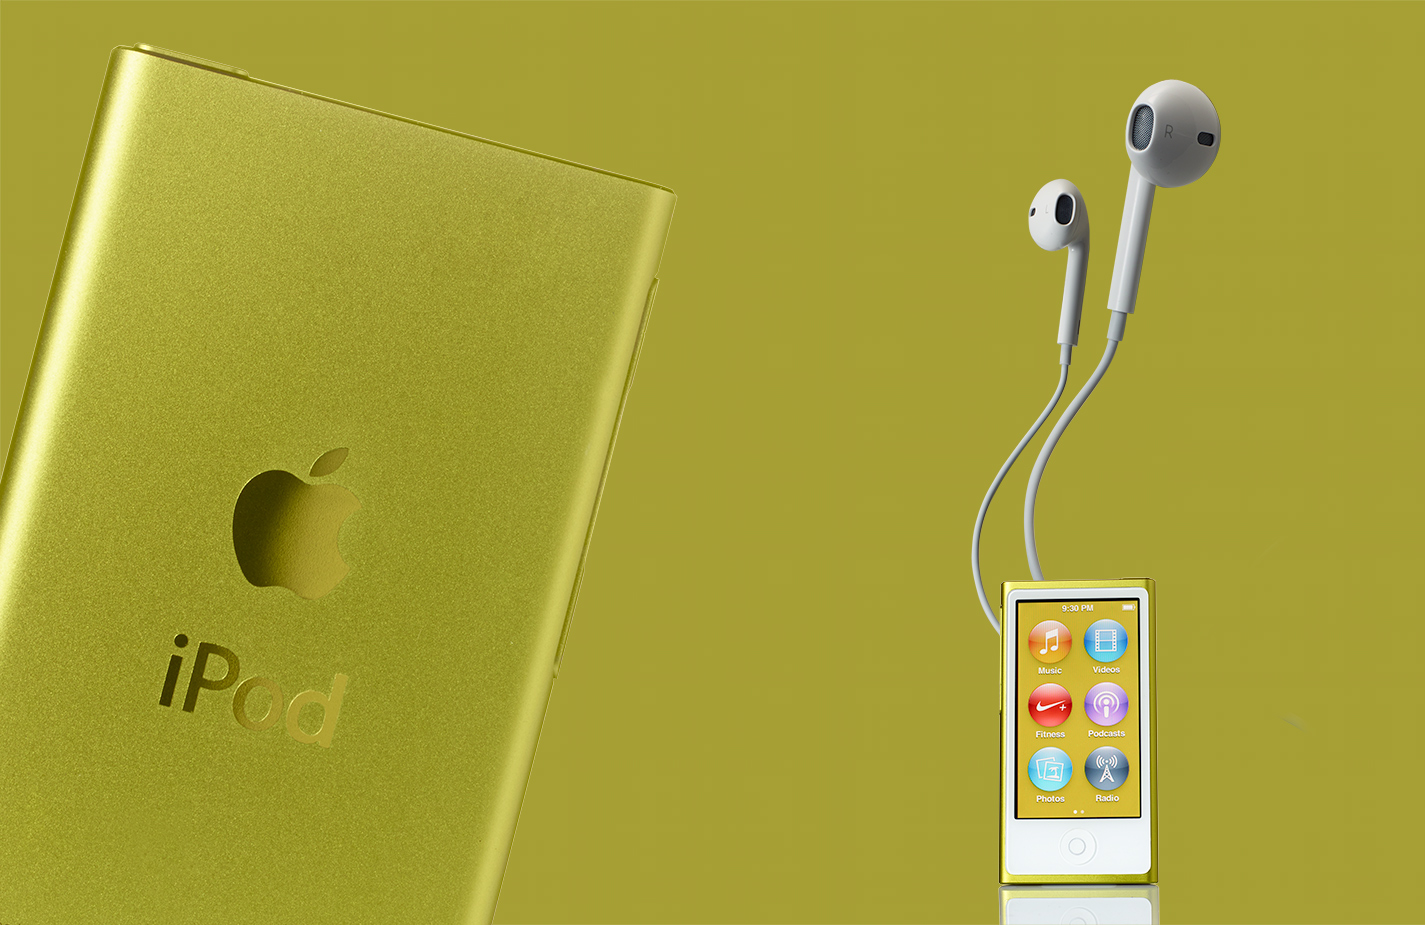 Ipod- Ipod with headphones- Henrique Du Tiel